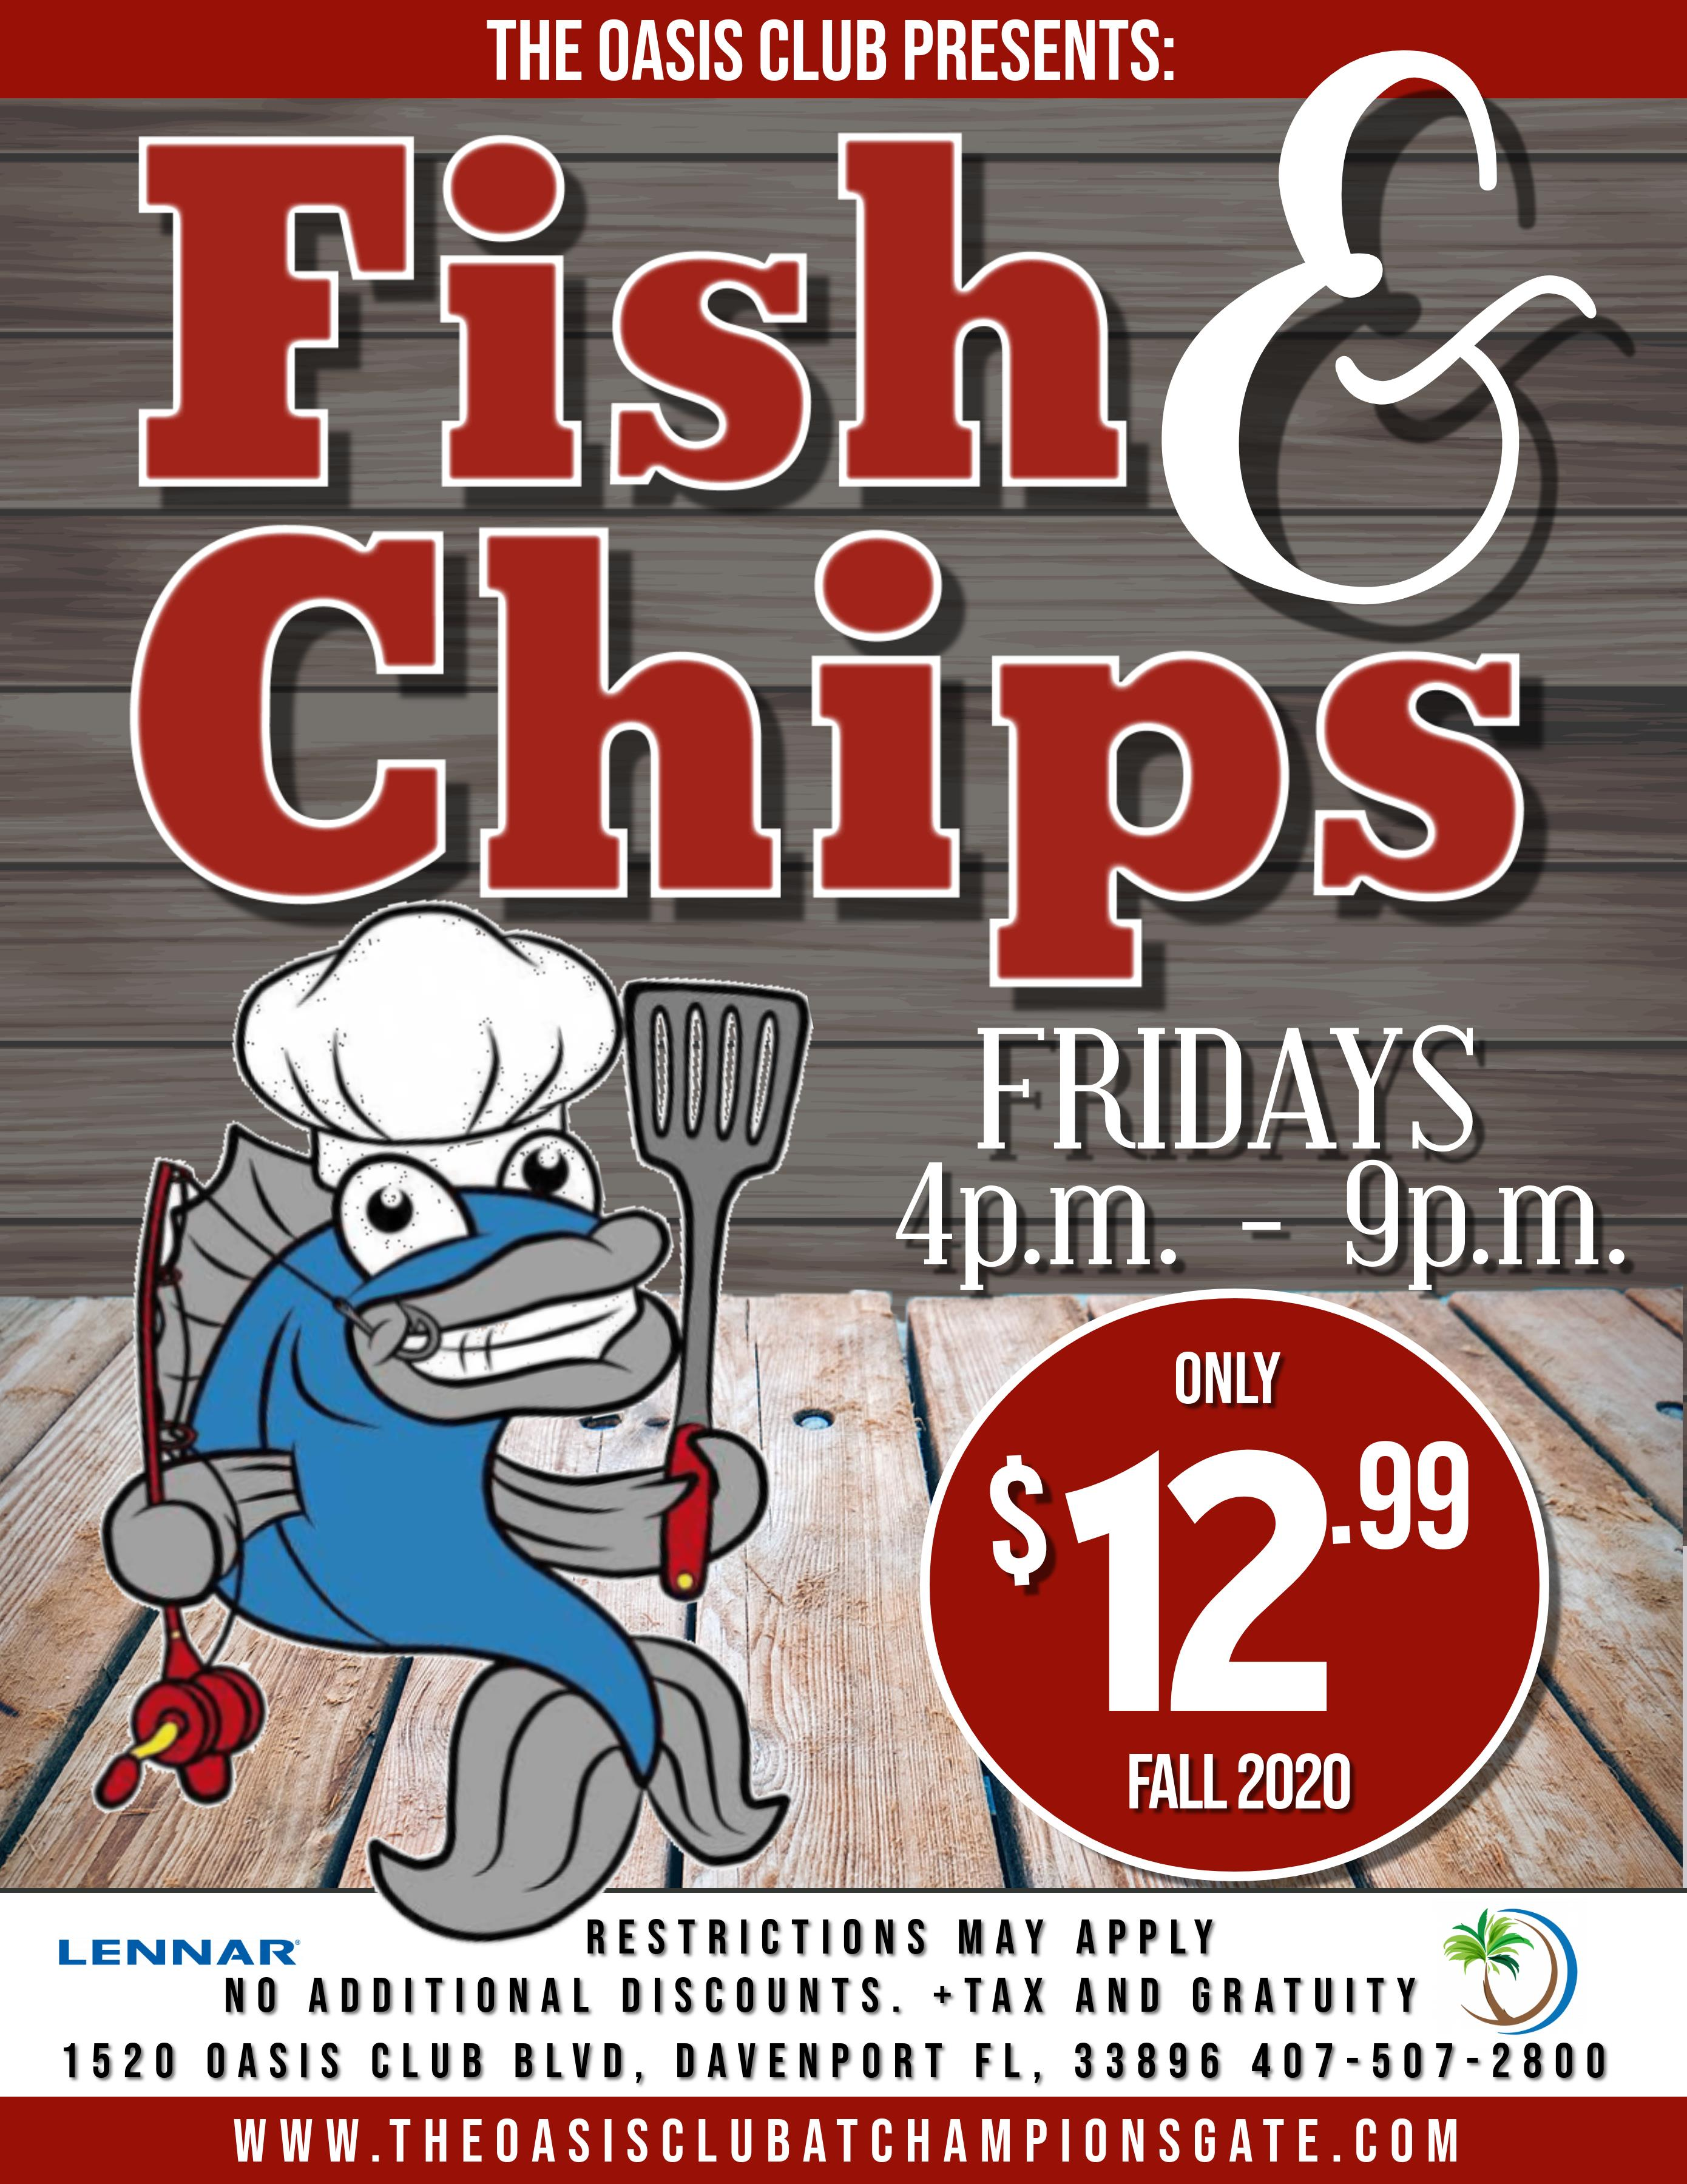 The Oasis Club Presents: Fish & Chips, Fridays from 4pm-9pm. Only $10 for March 2020. While Supplies last no additional discounts + tax and gratuity. 1520 Oasis Club Blvd, Championsgate FL, 33896. 407-507-2800. www.theoasisclubatchampionsgate.com